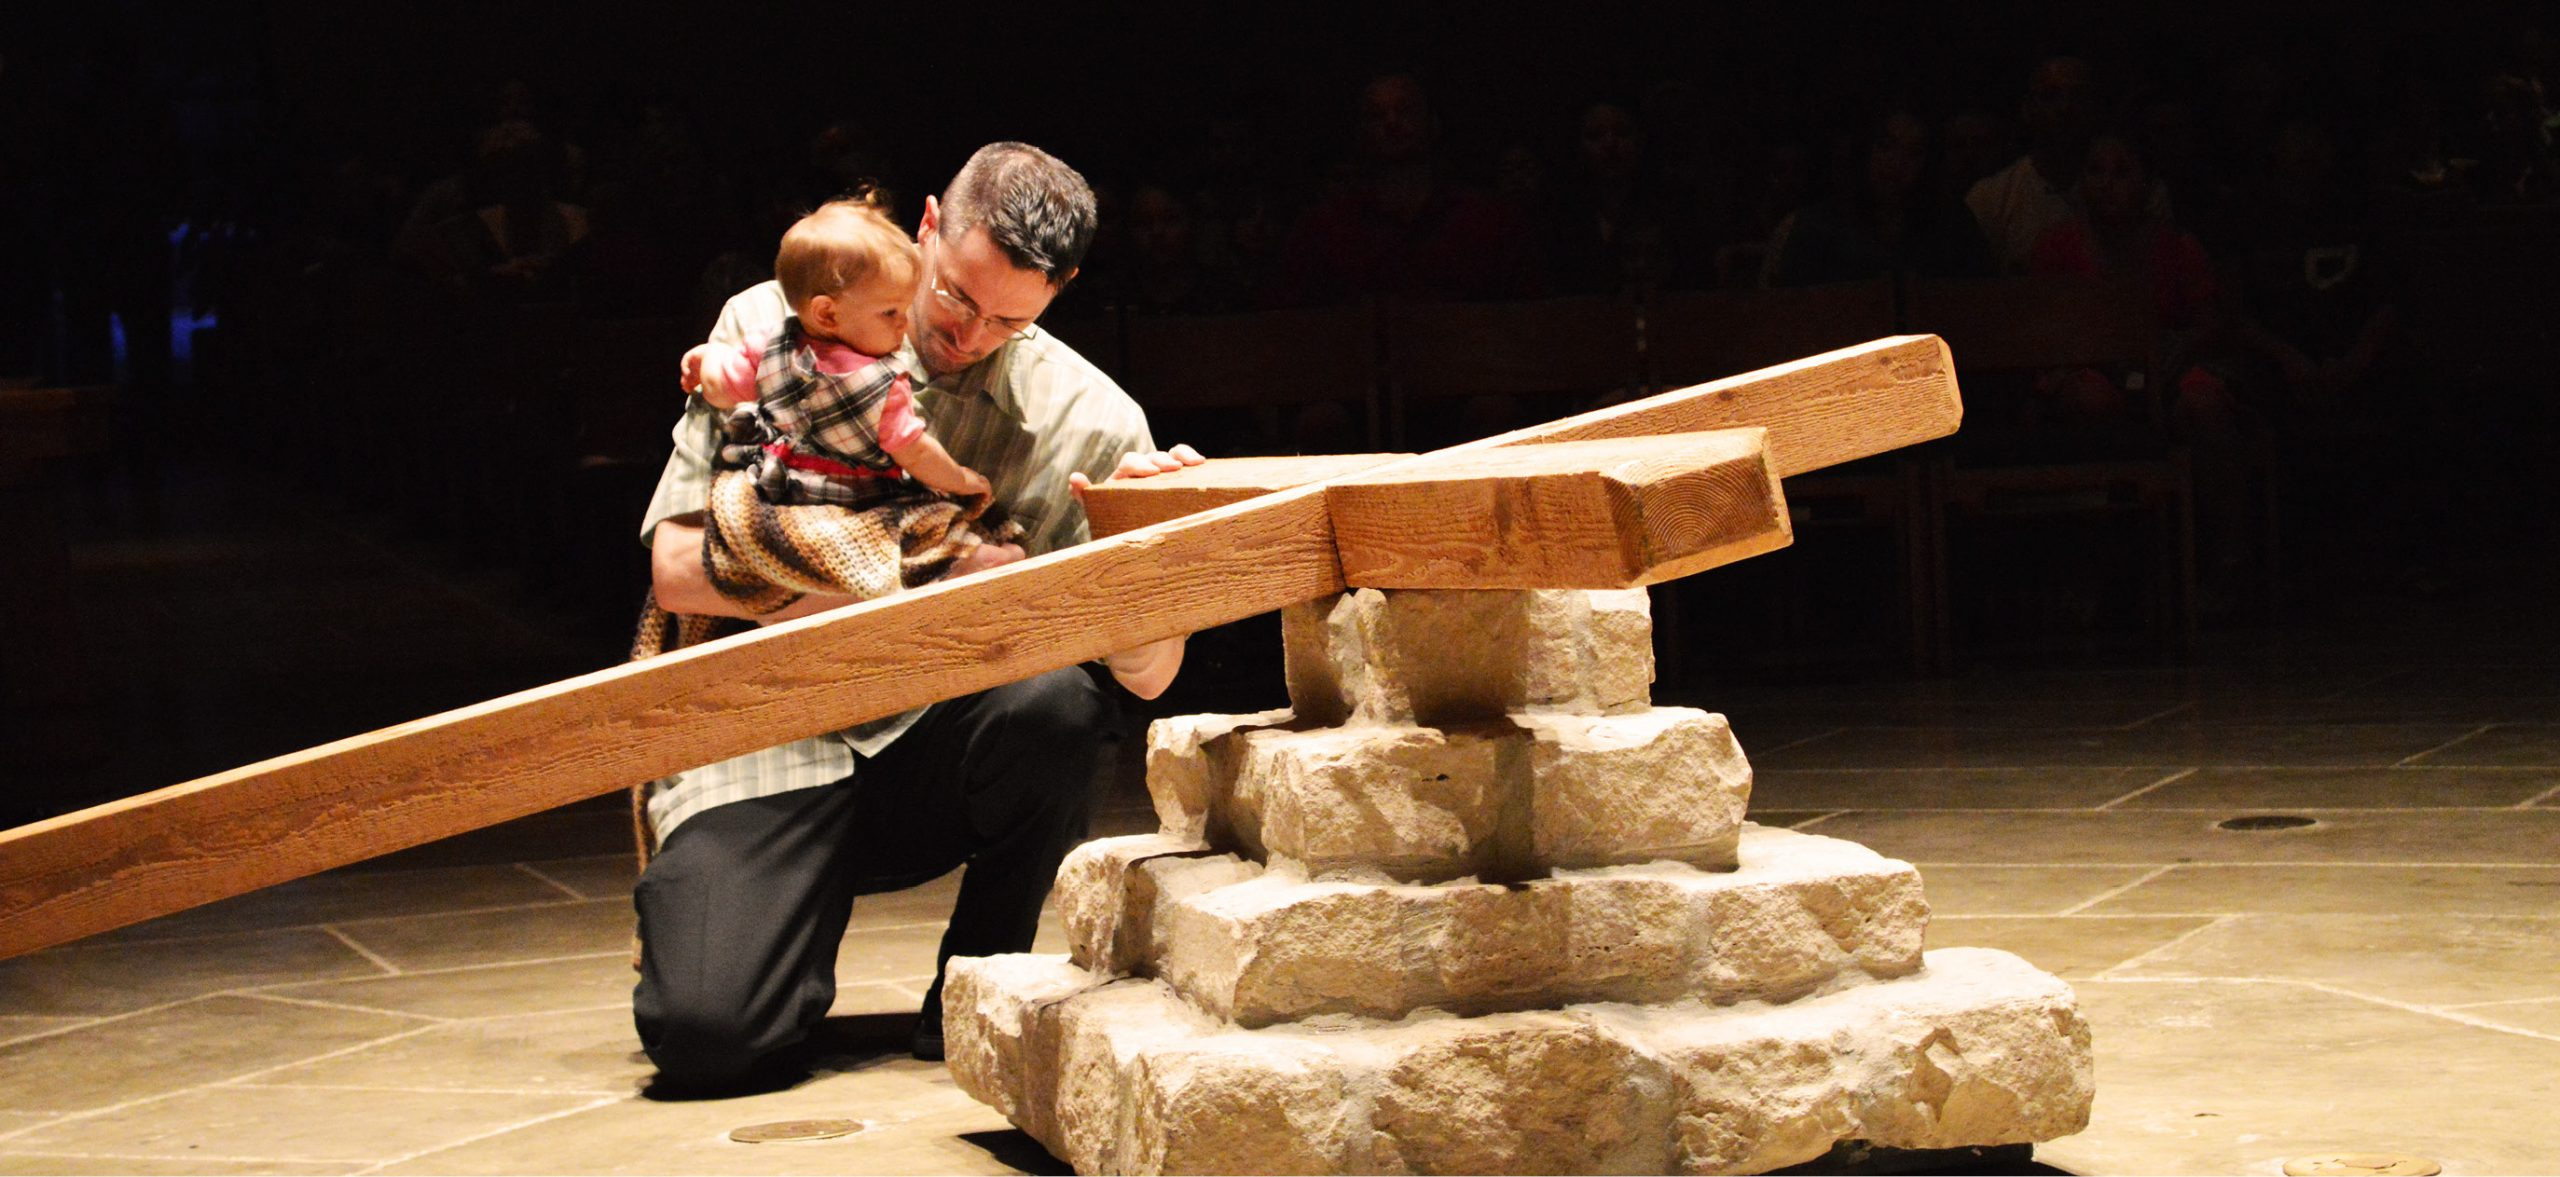 Dad-Venerating-Cross-with-Child-scaled